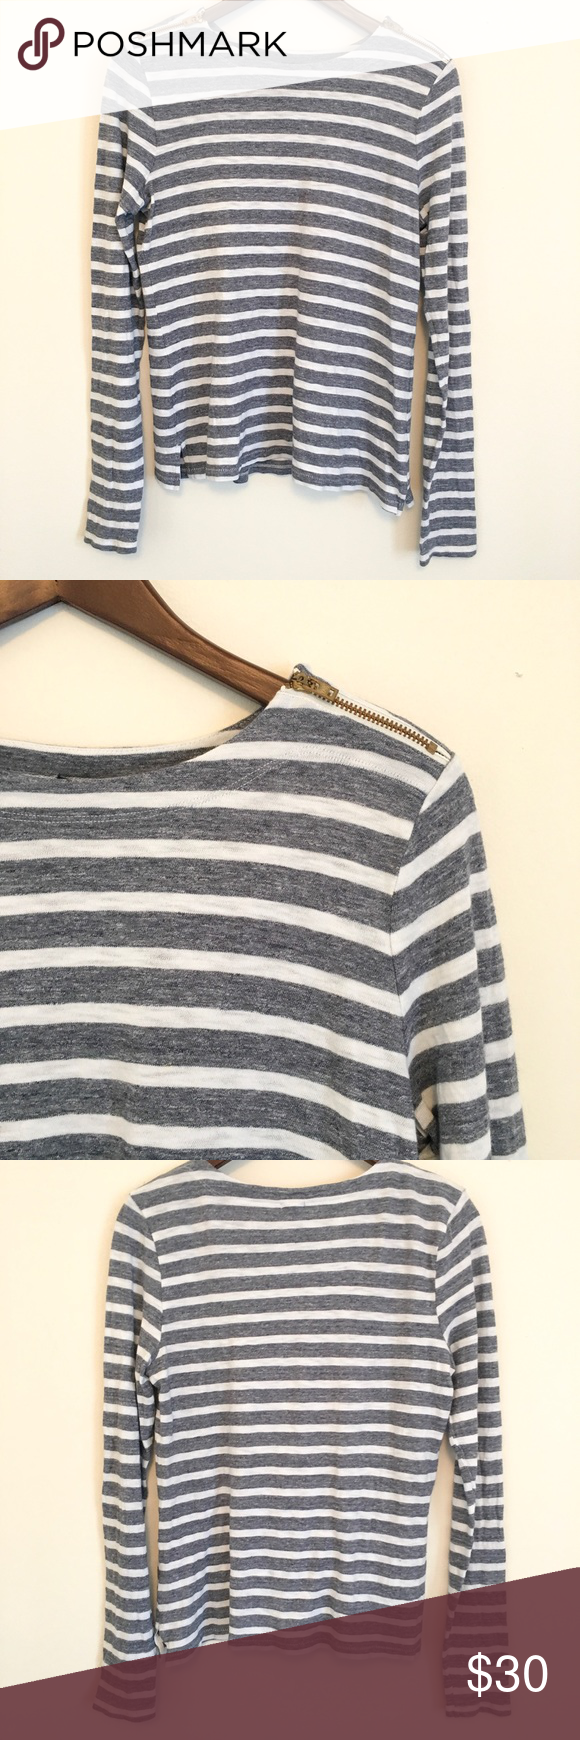 """J. Crew Gray & White Blouse J. Crew Gray and White Blouse with Zippered Sleeves  Size medium, in great condition  100% Cotton #B203 Approximate Measurements Bust 17 3/4"""", shoulders 15 1/2"""", length 23"""", sleeves 24 1/4"""" J. Crew Tops Blouses"""